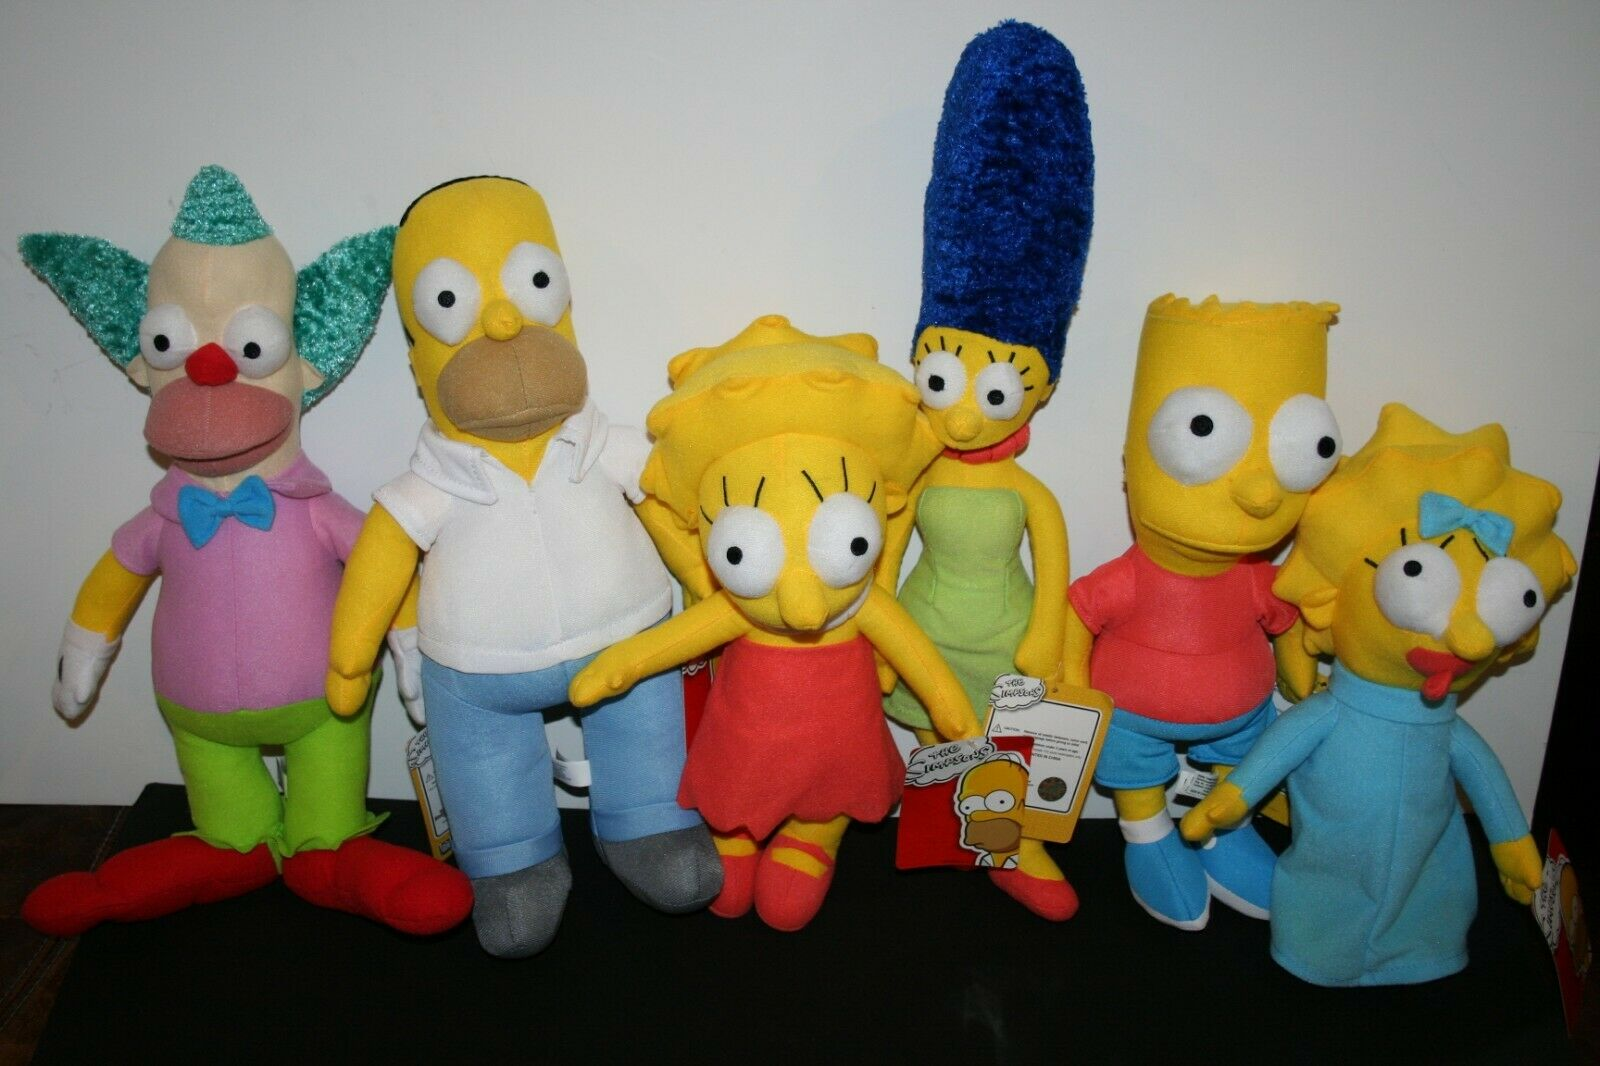 THE SIMPSONS HOMER,MARGE,KRUSTY,BART,LISA AND MAGGIE BABY. ALL 6 NEW WITH TAGS